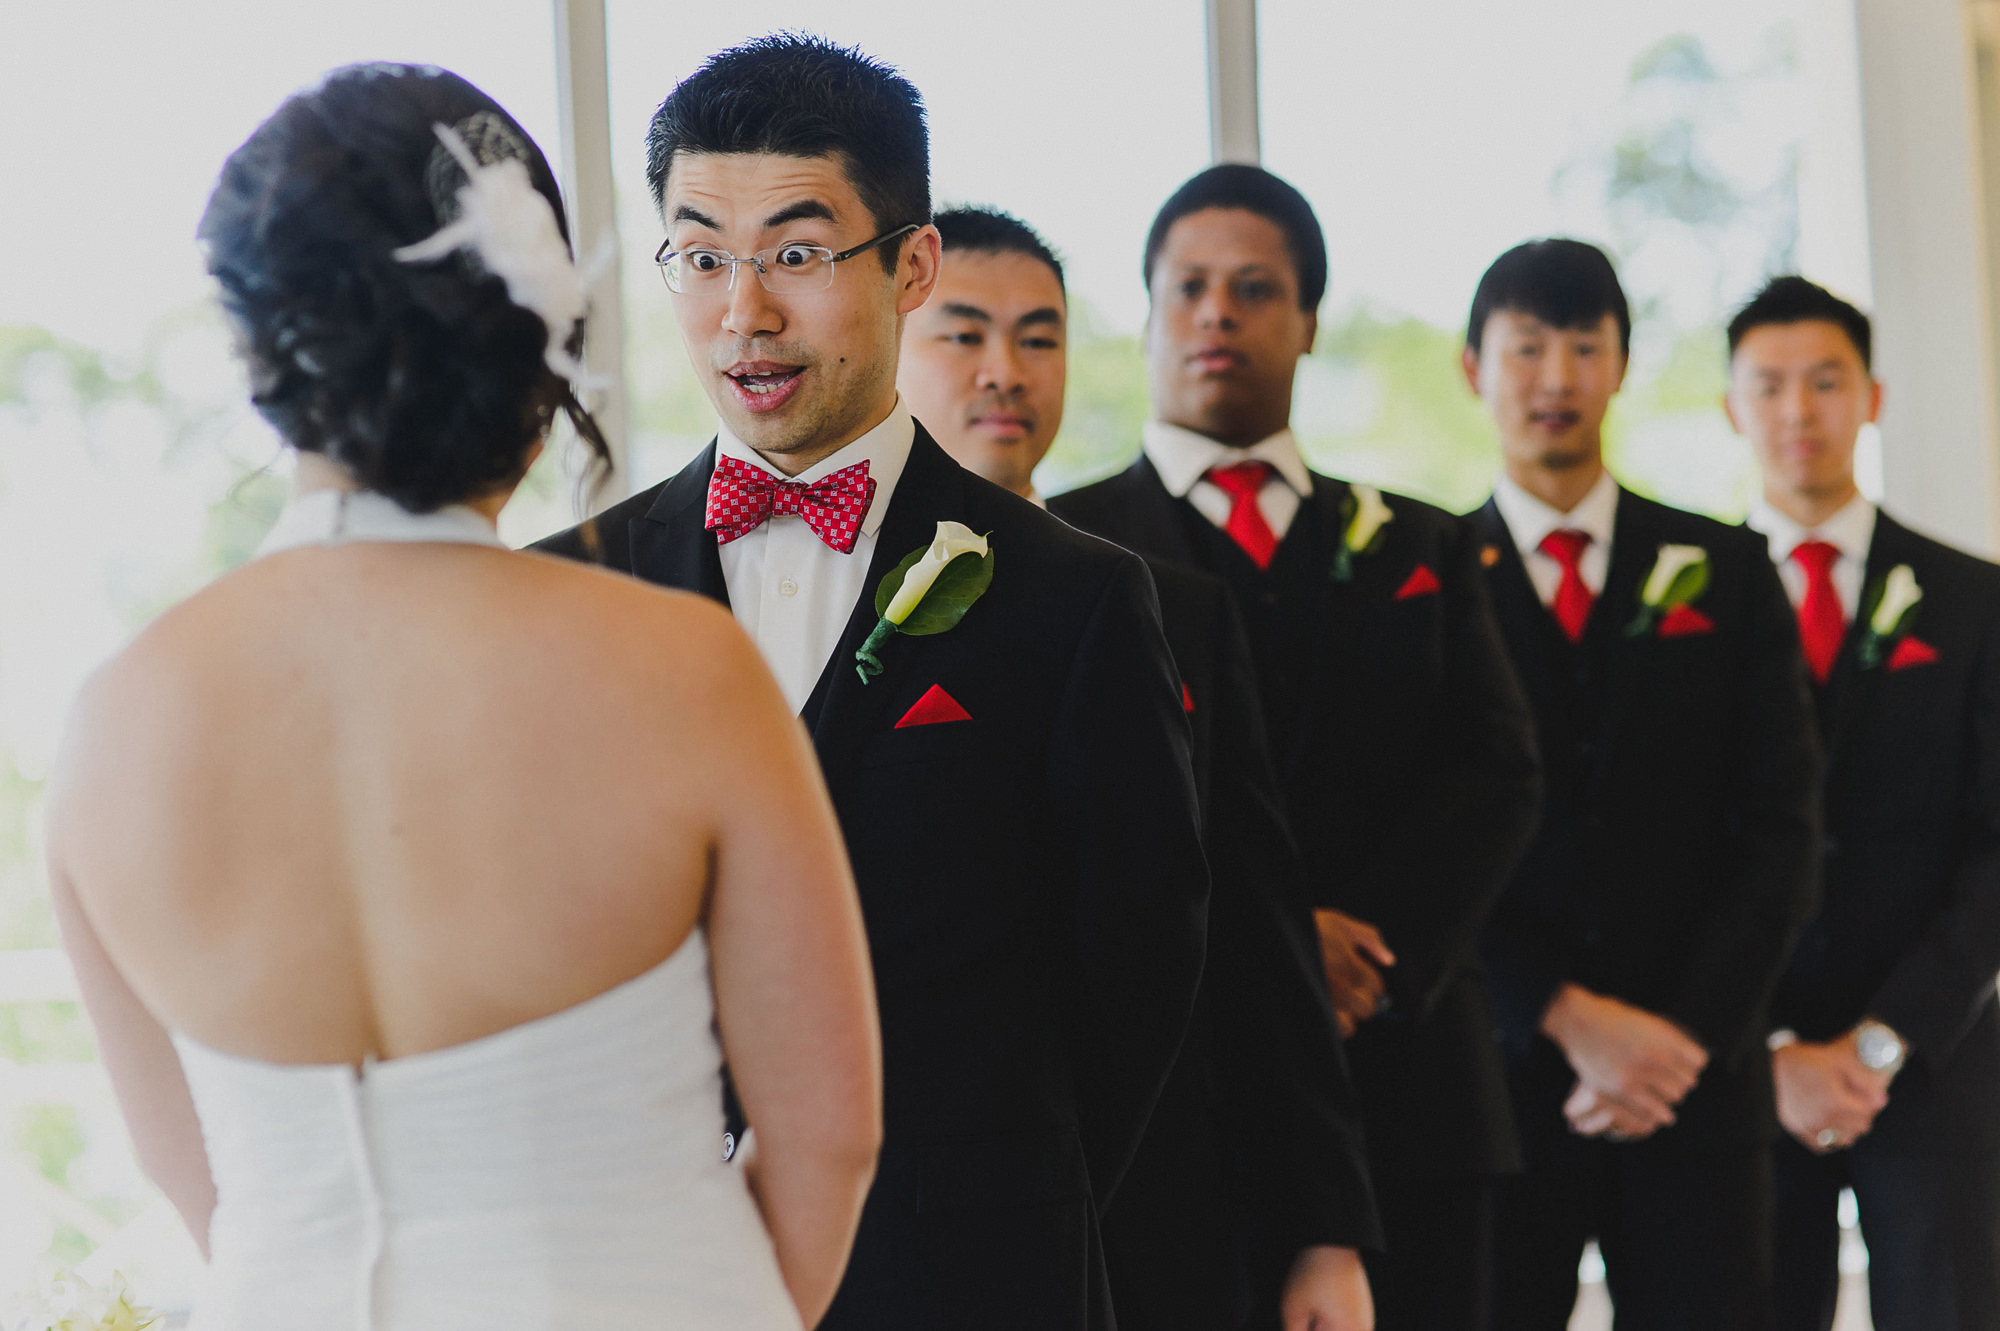 Funny reaction from groom during wedding ceremony, photo by The Brenizers